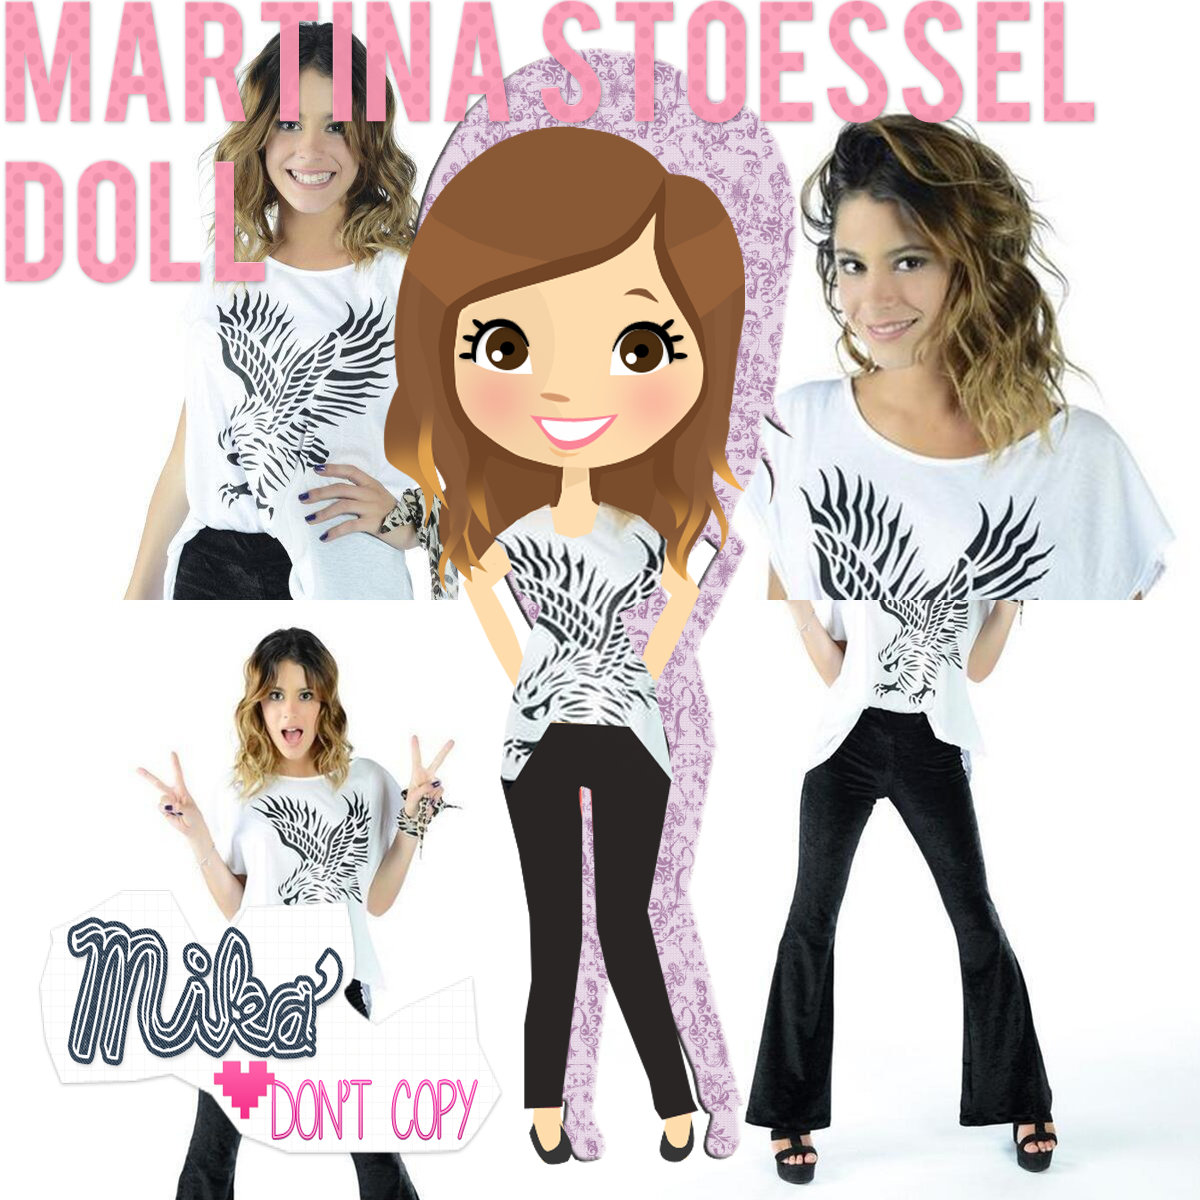 Martina Stoessel Doll by MikaStoessel